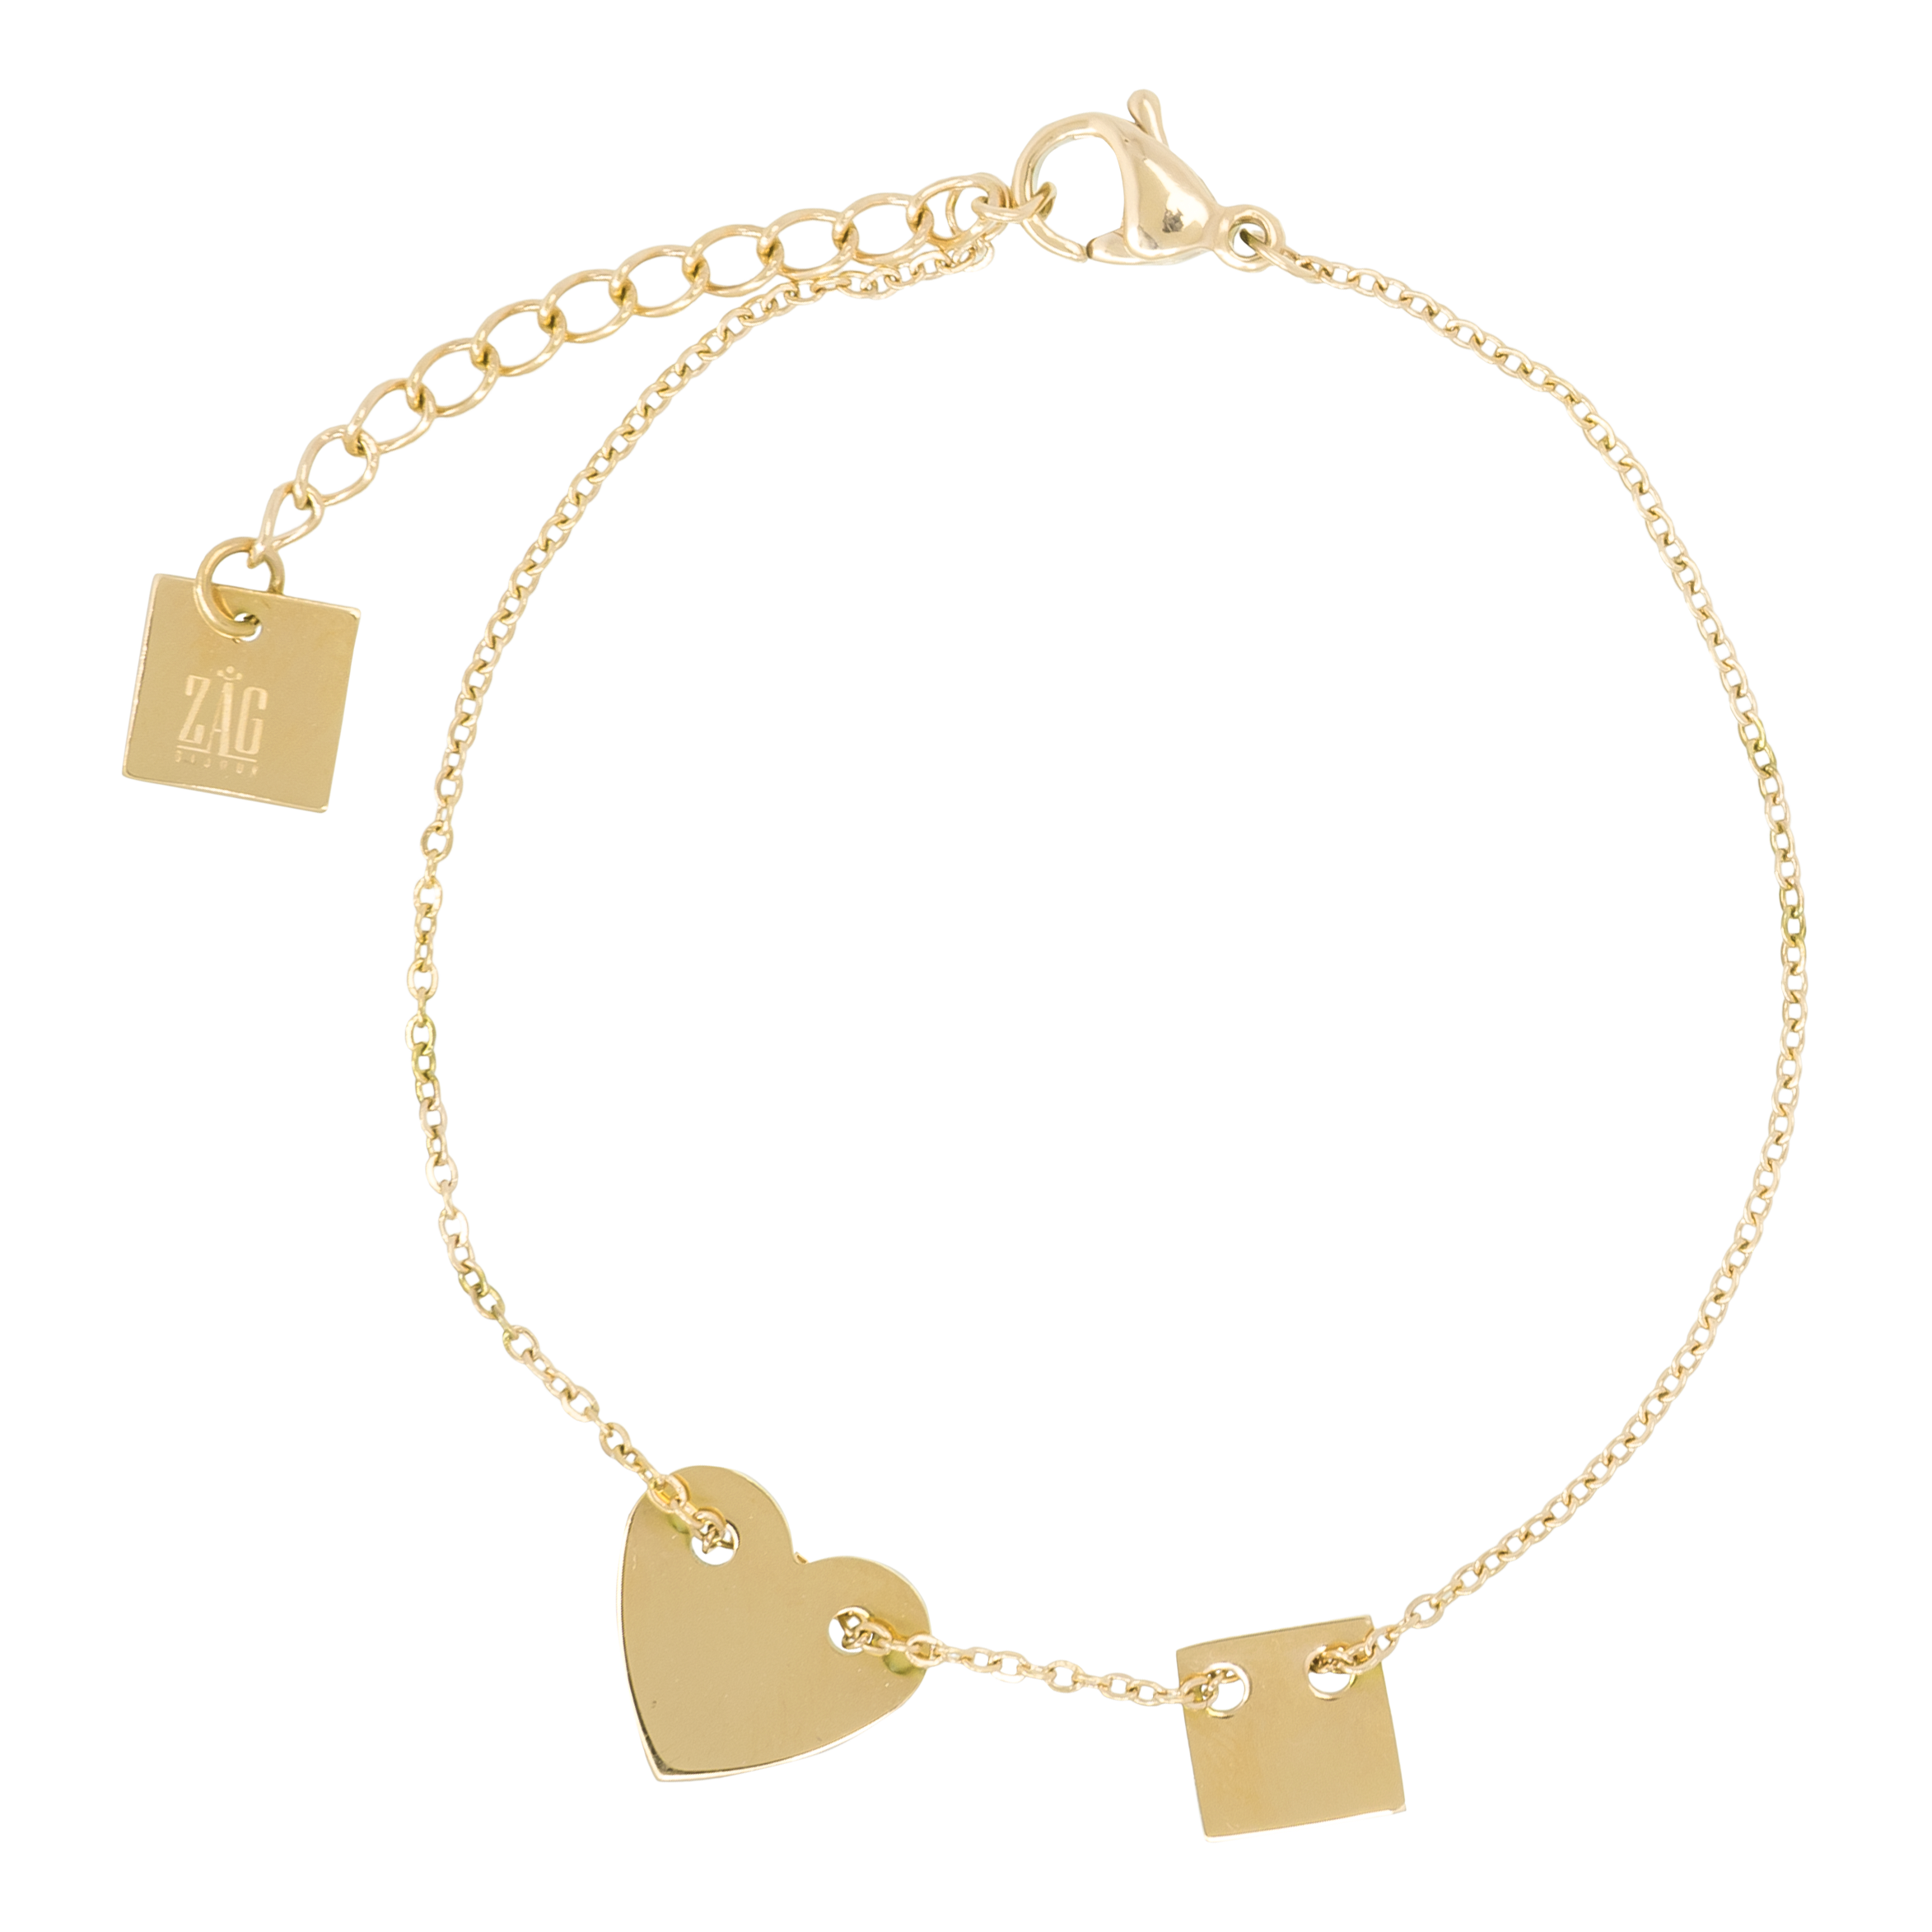 mini bracelet heart lennse isabel product gold